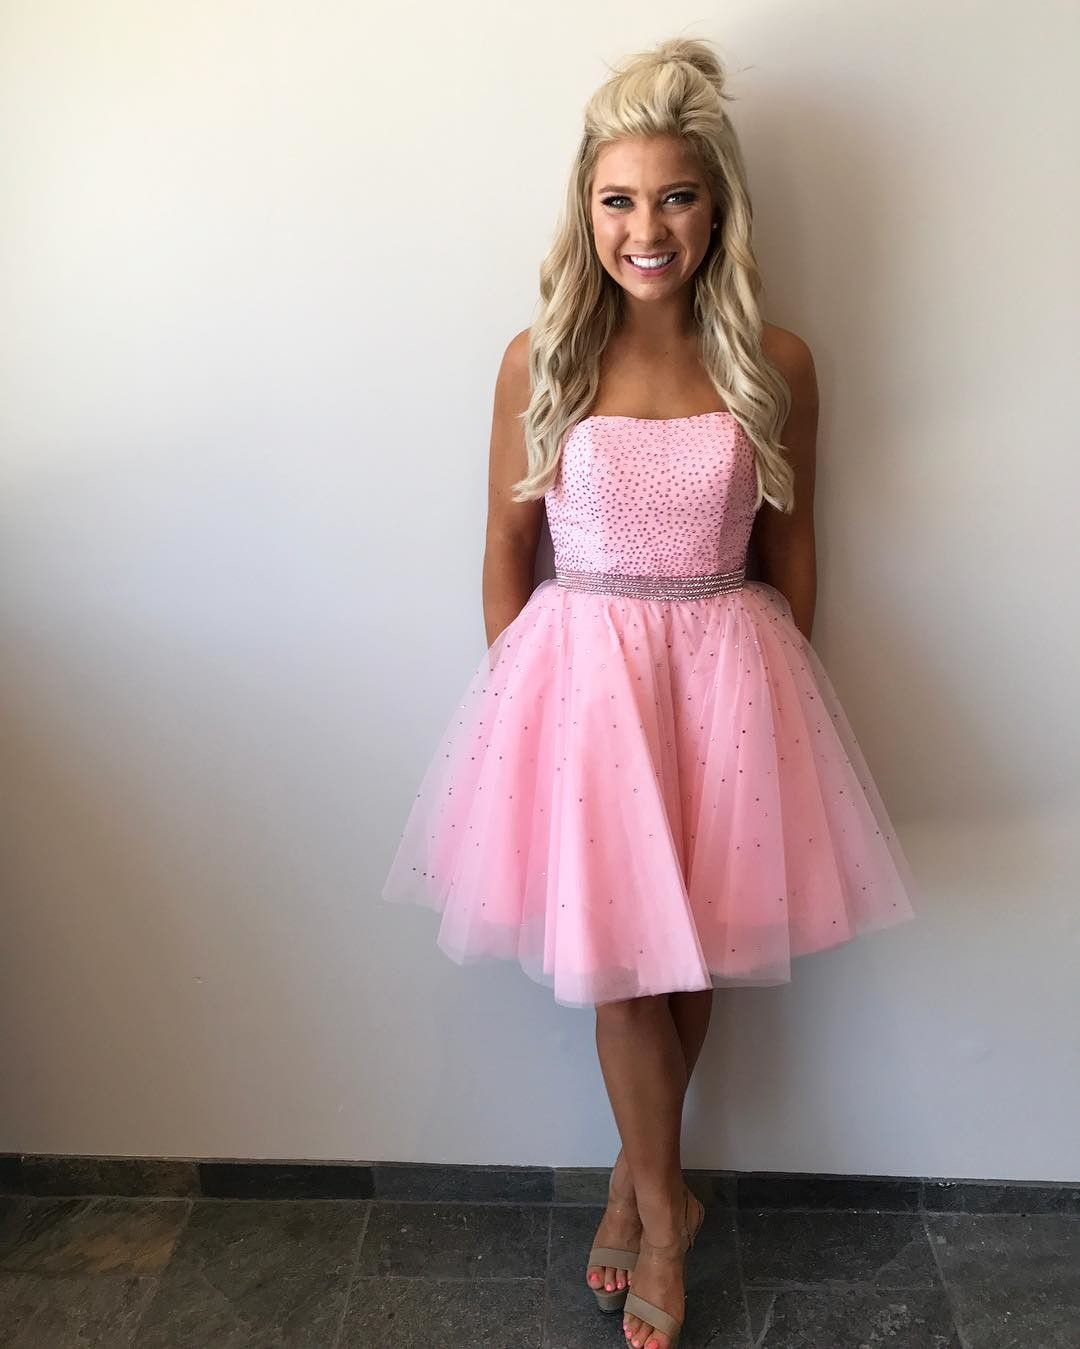 2fc2fa8f163 Strapless Short Pink Tulle Homecoming Dress sold by modsele. Shop more  products from modsele on Storenvy